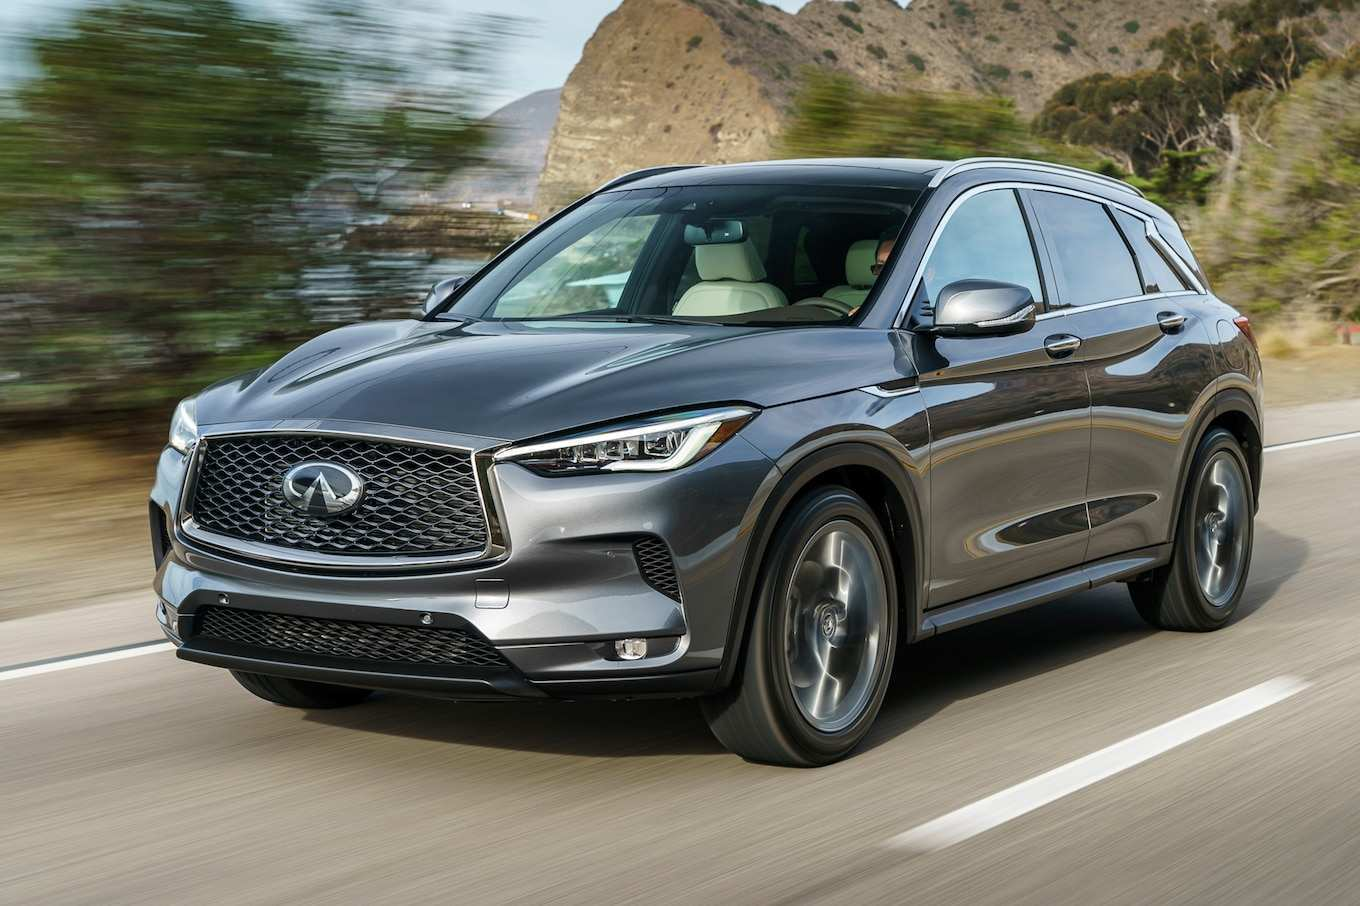 44 Great 2019 Infiniti Truck Spesification with 2019 Infiniti Truck